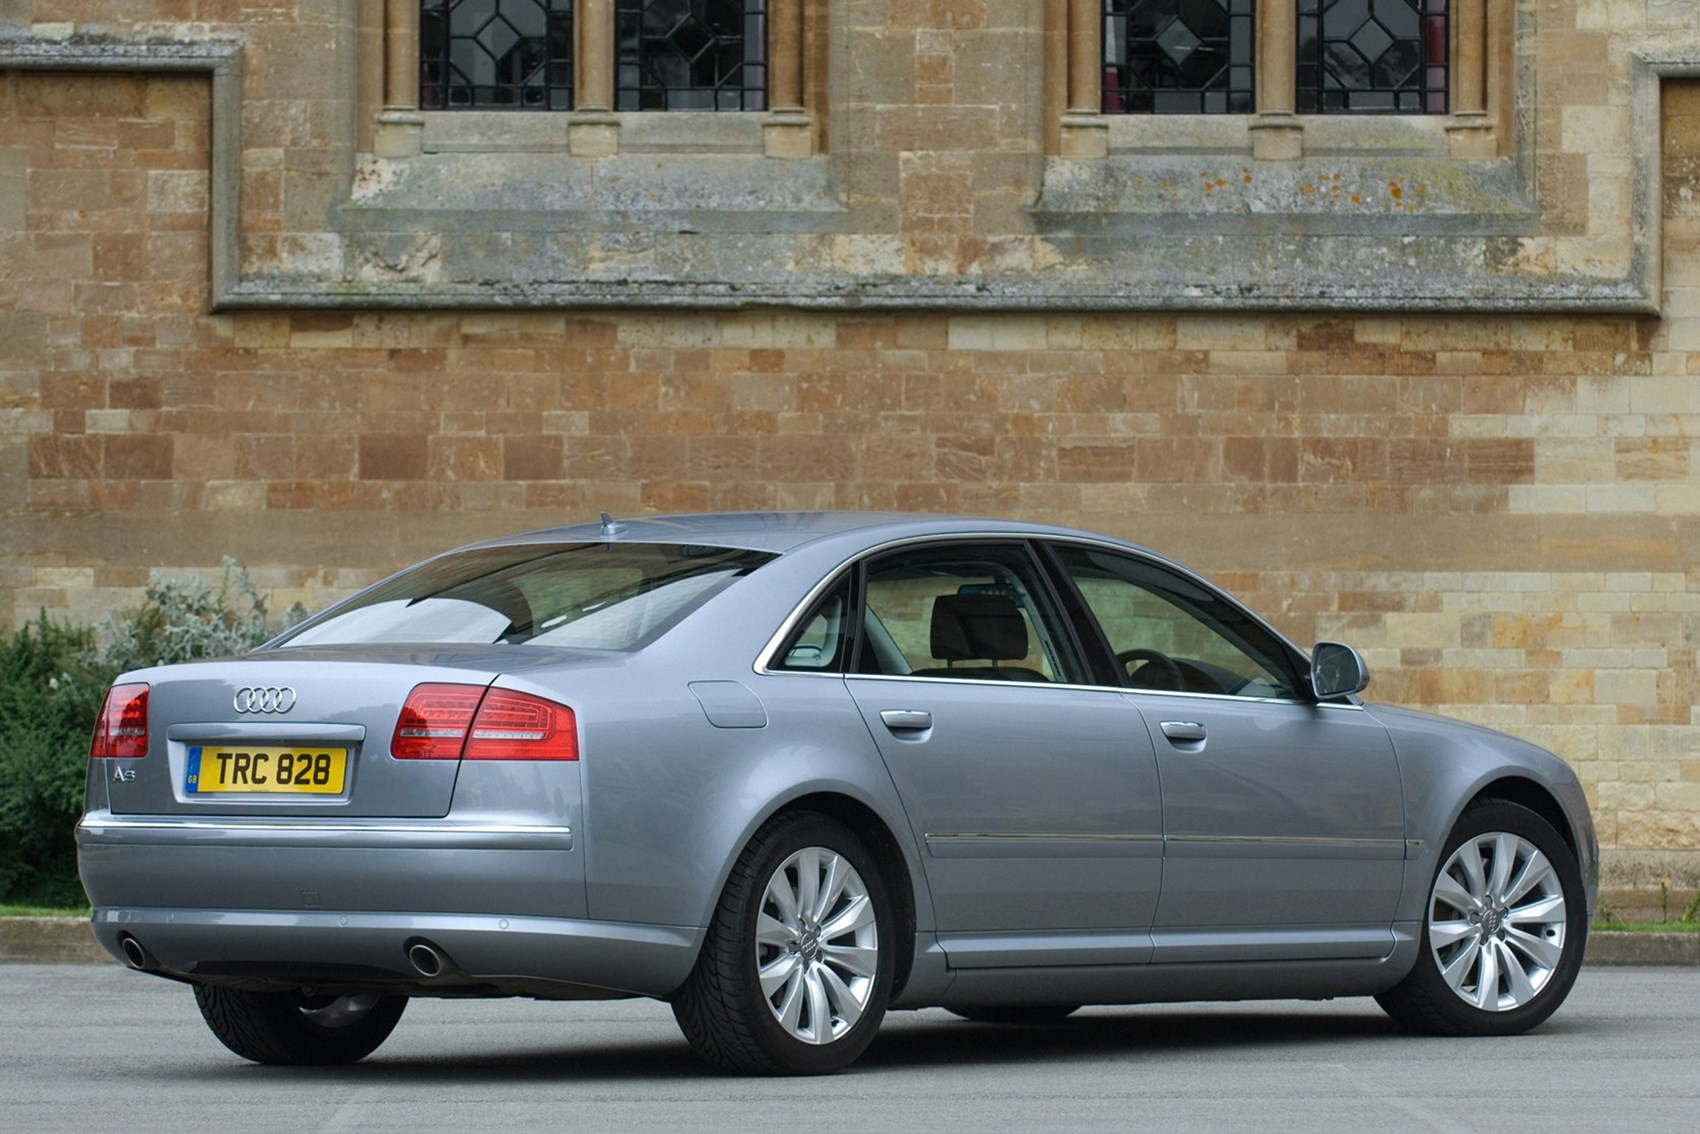 Audi A8 - luxury cars for less than £10k